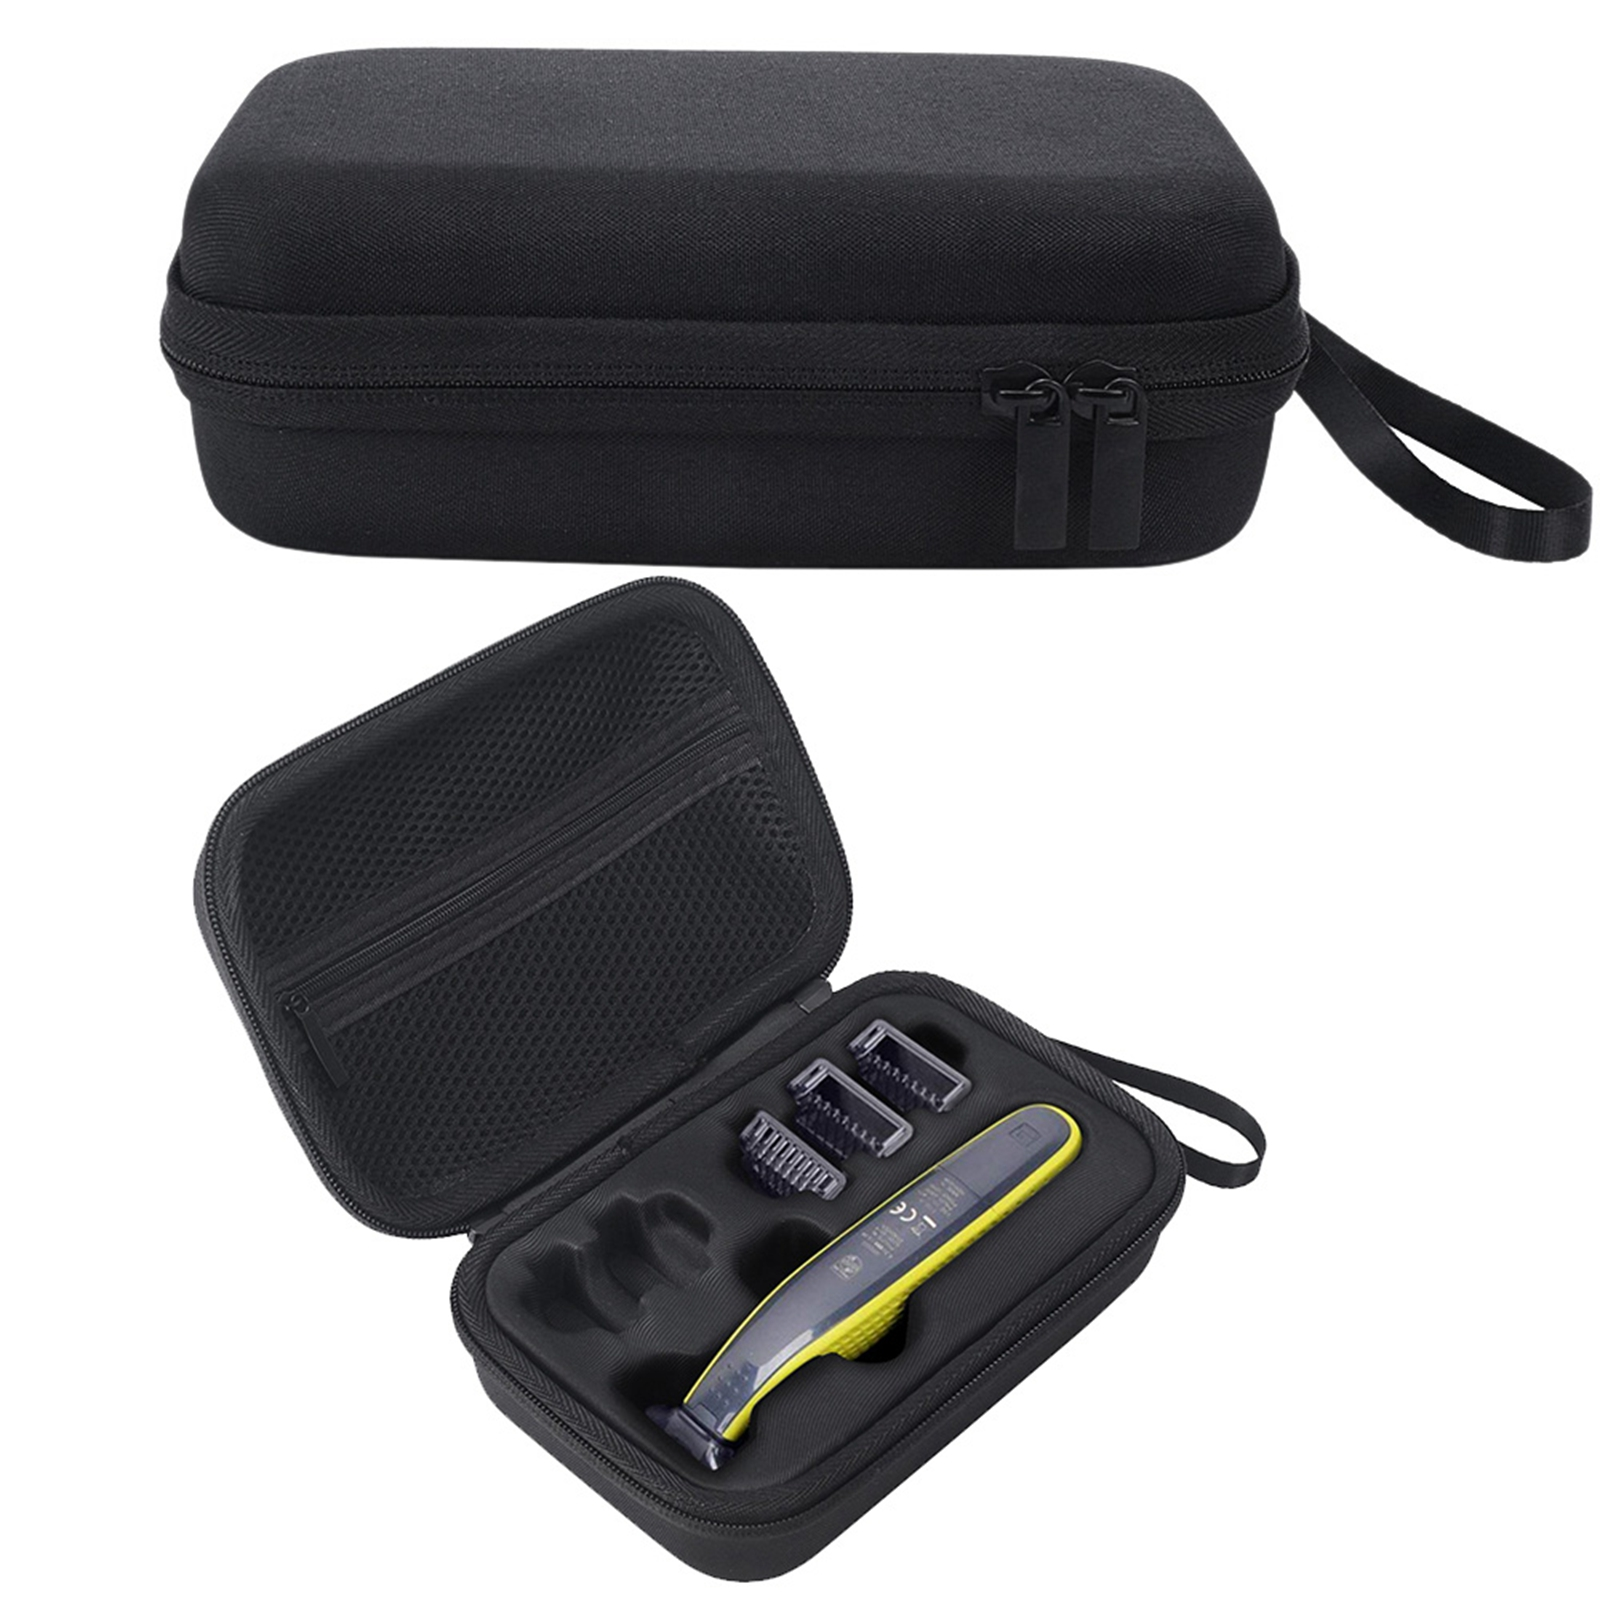 Storage Case Hard Carrying Case For Philips Norelco Oneblade QP2520/70 QP2520/90 QP2520/72 QP2630/70 image